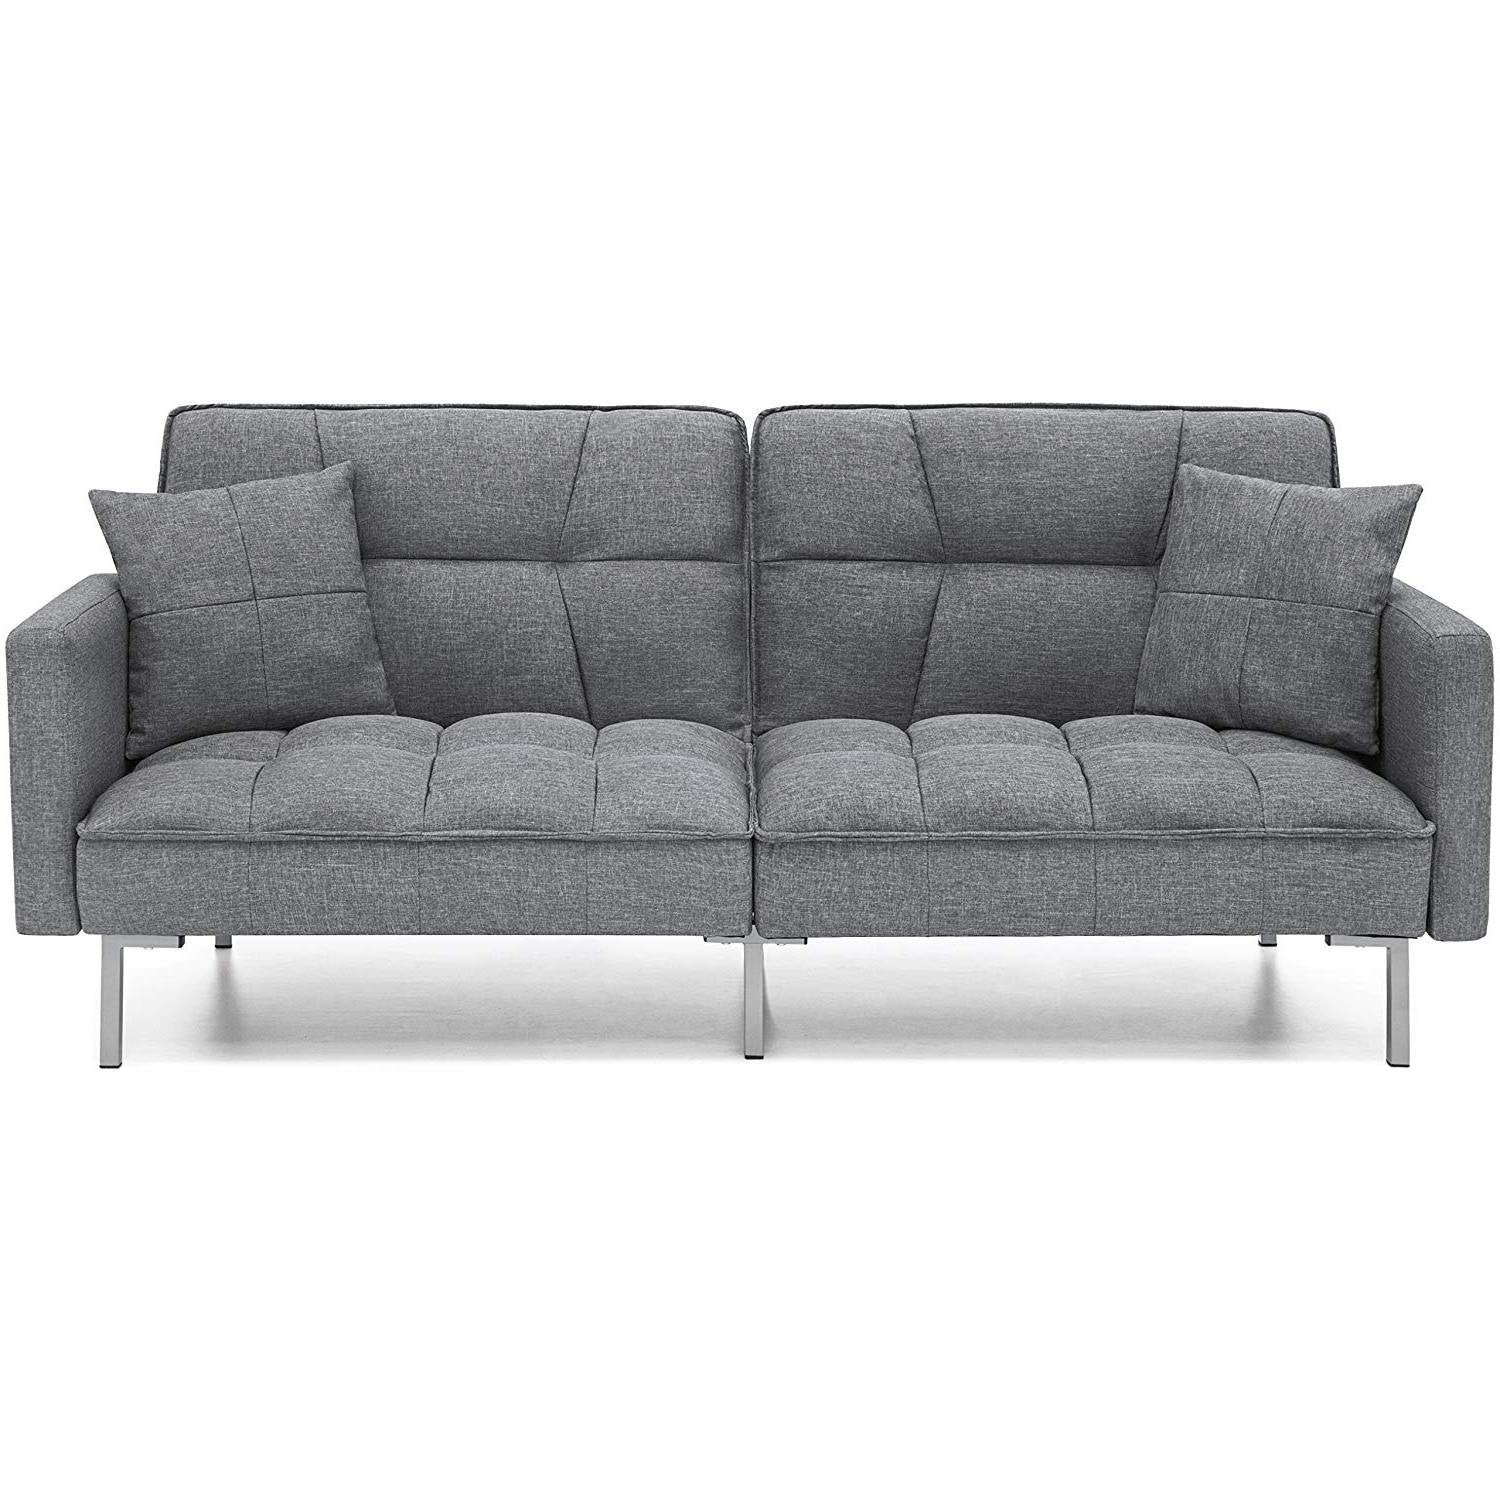 Modern Grey Linen Split-Back Futon Sofa Bed Couch – Home or ...